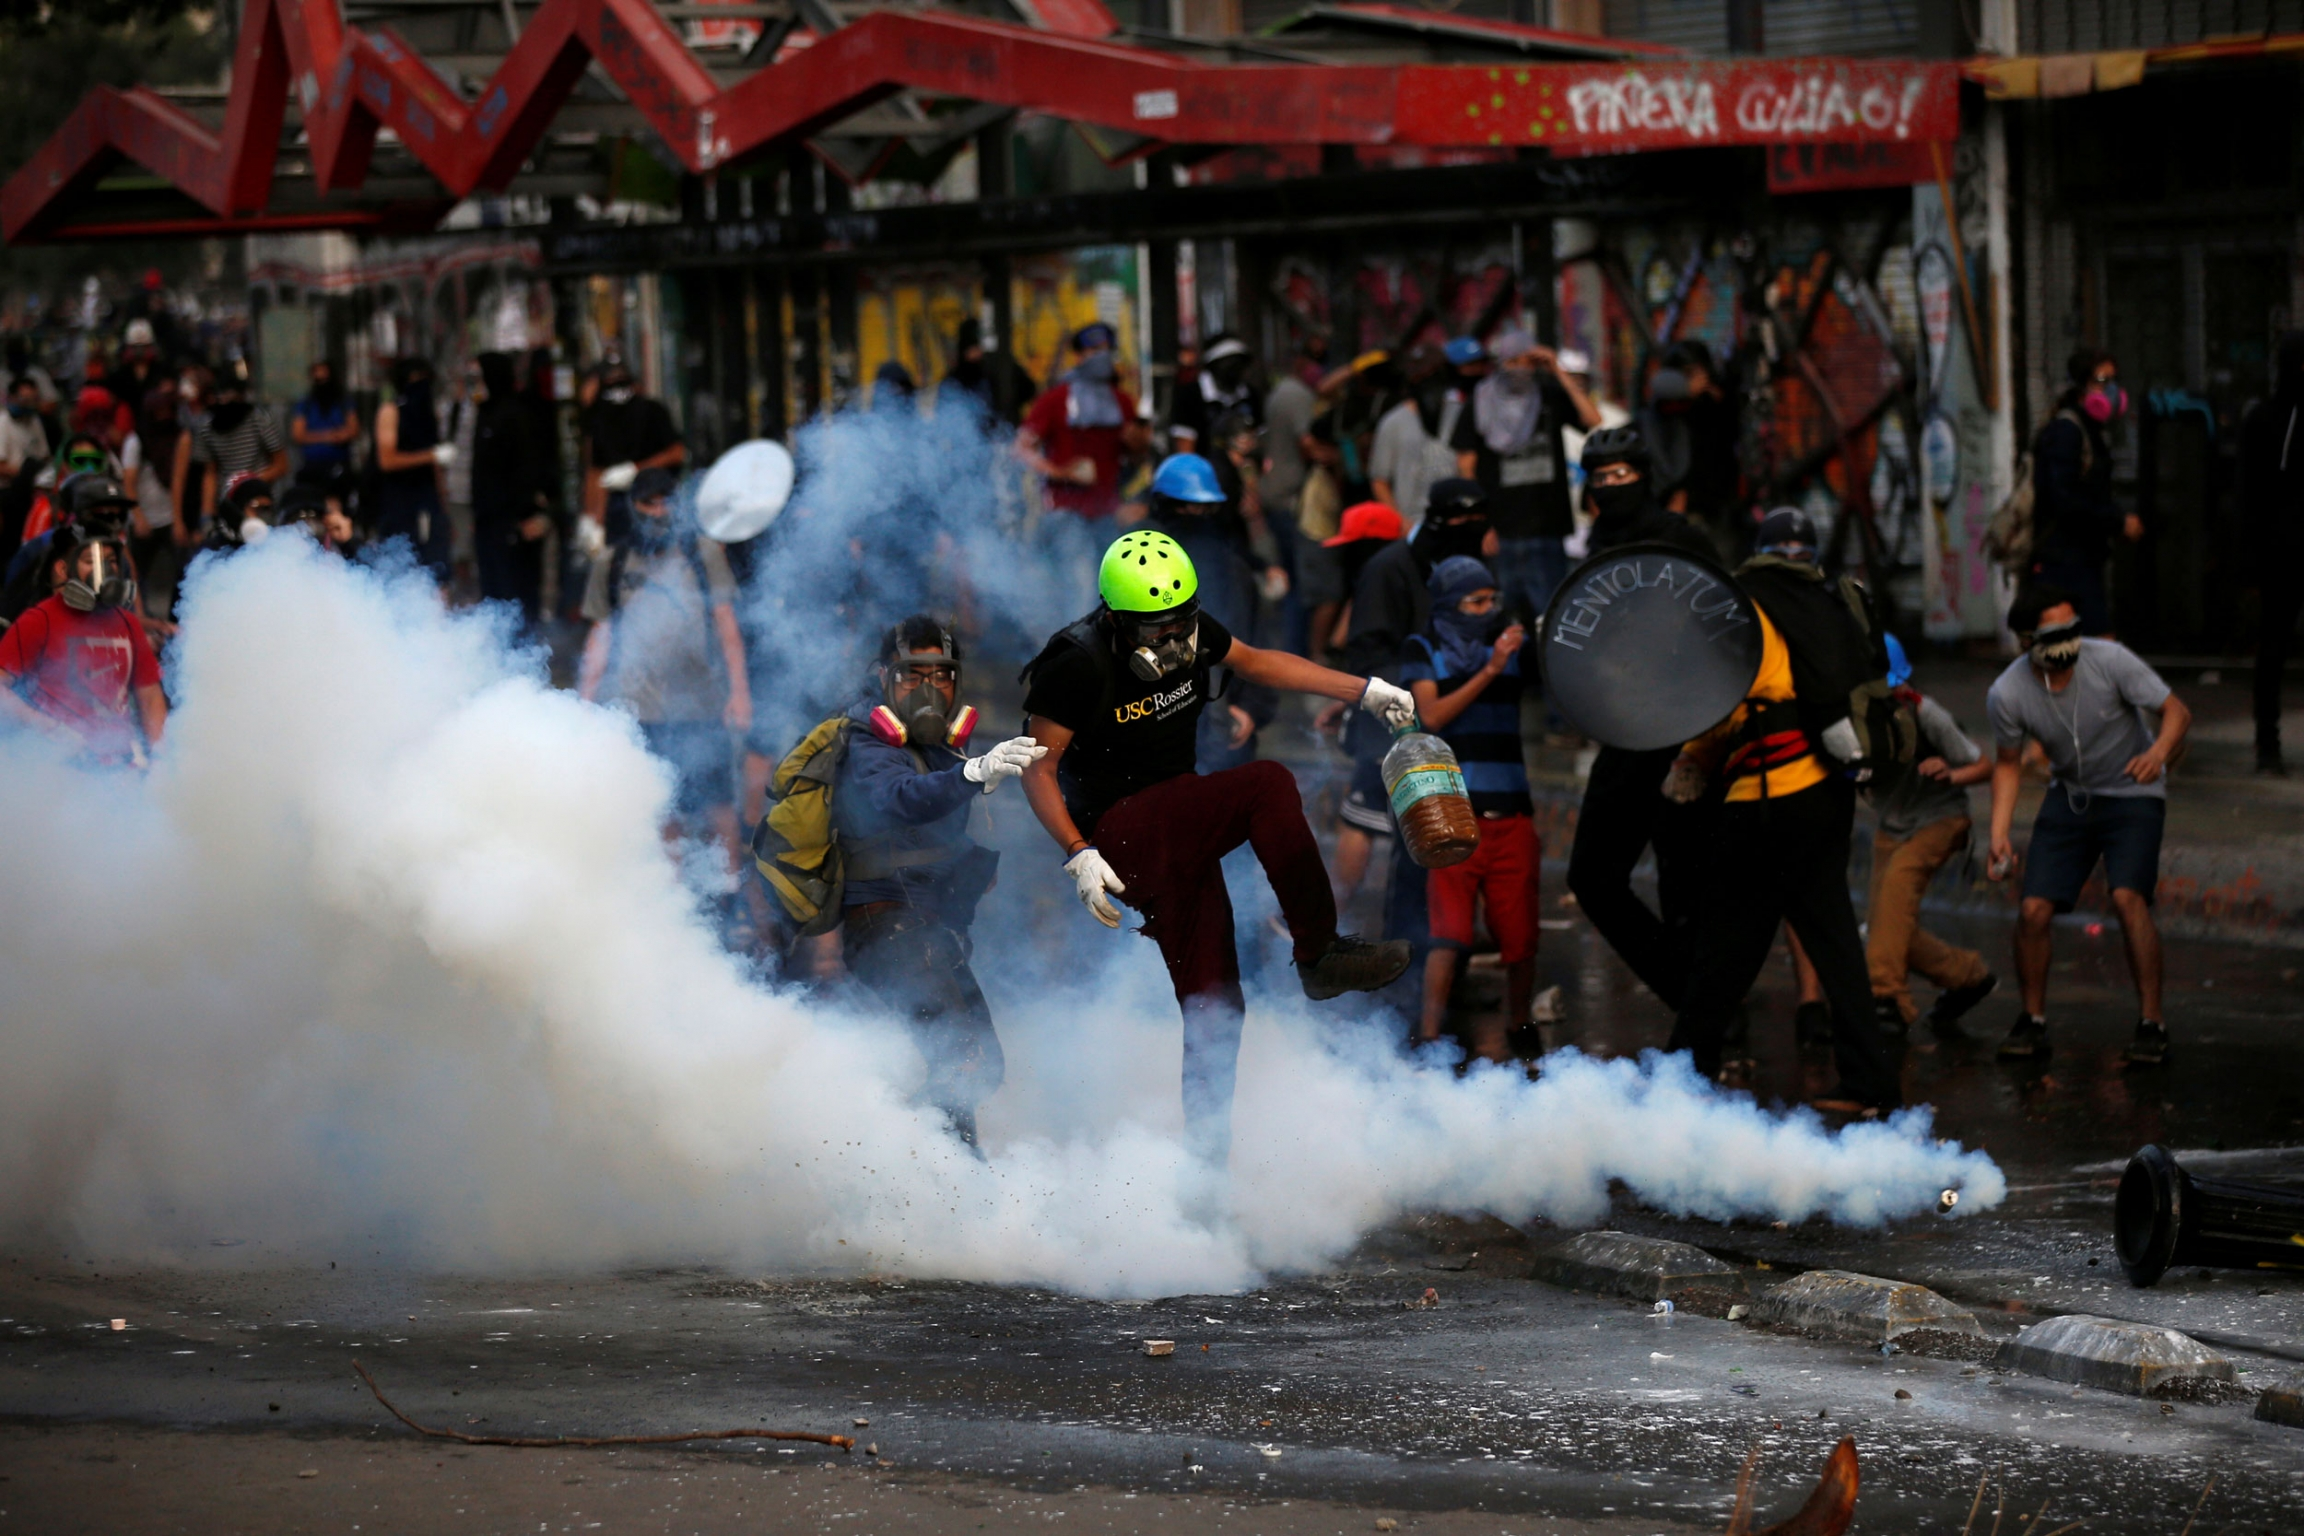 A goupr of demonstrators wearing gas masks are show surrounded by clouds of tear gas.